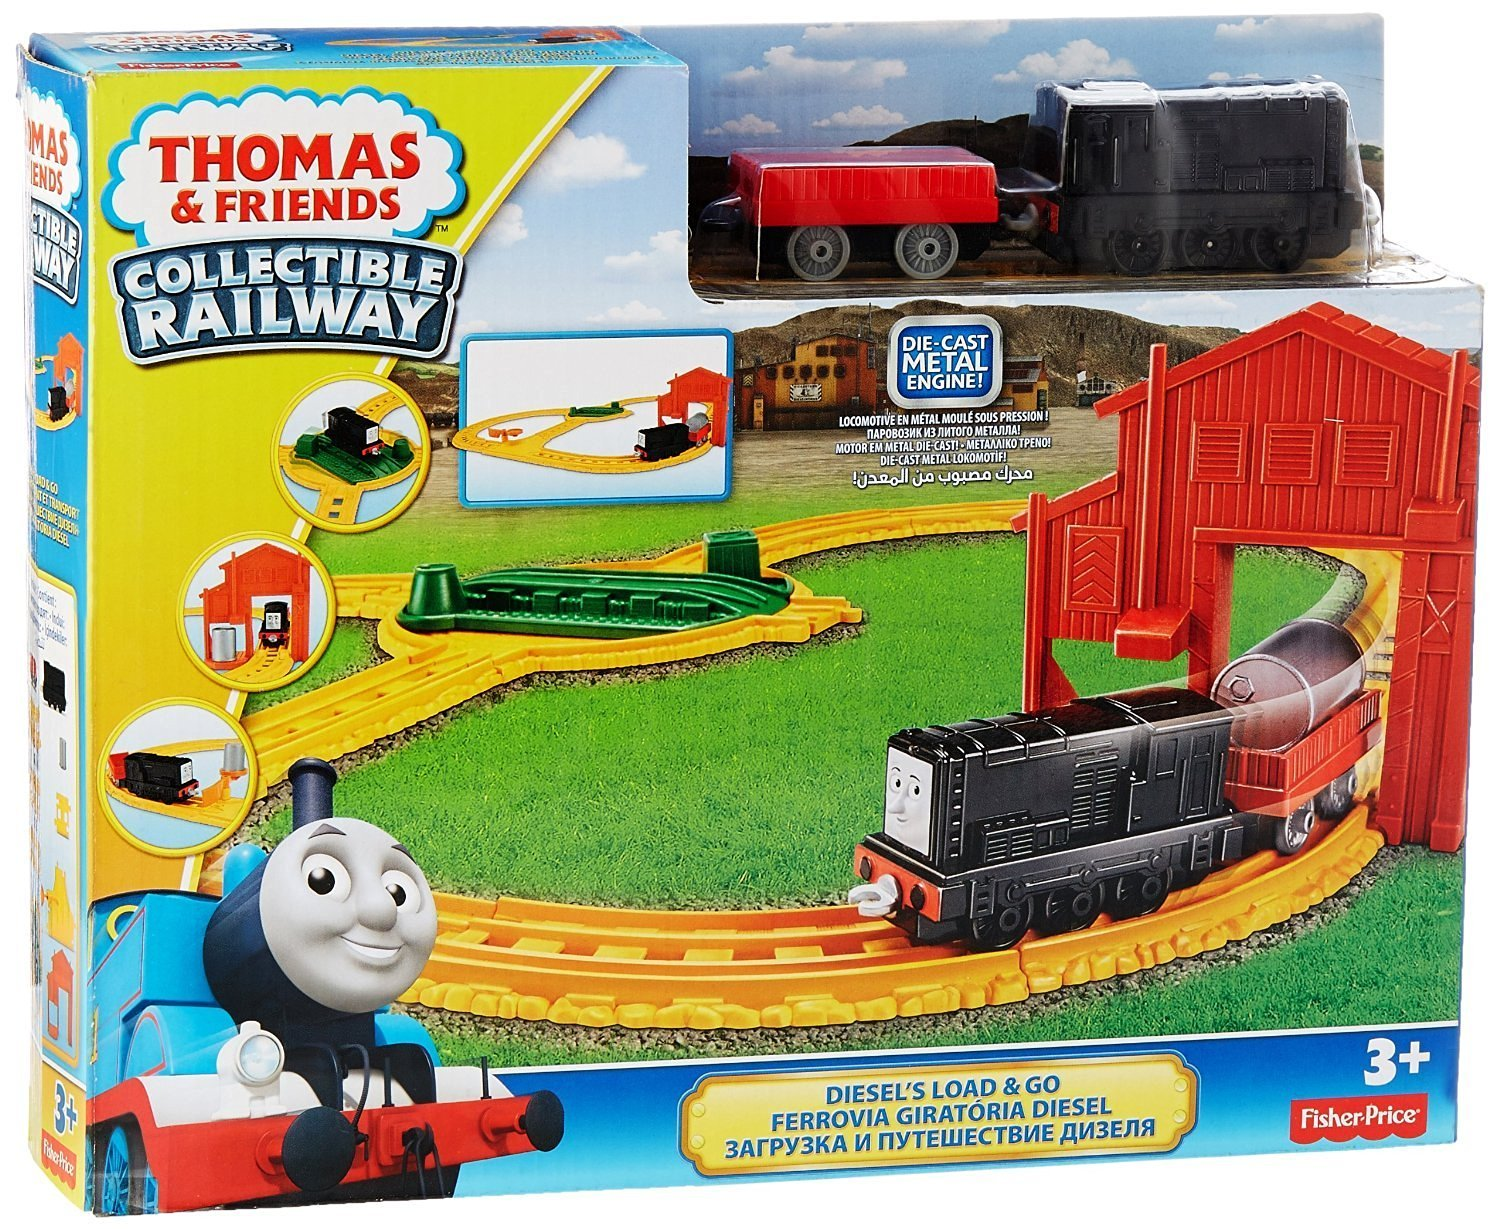 Thomas And Friends Collectible Railway Diesel S Load And